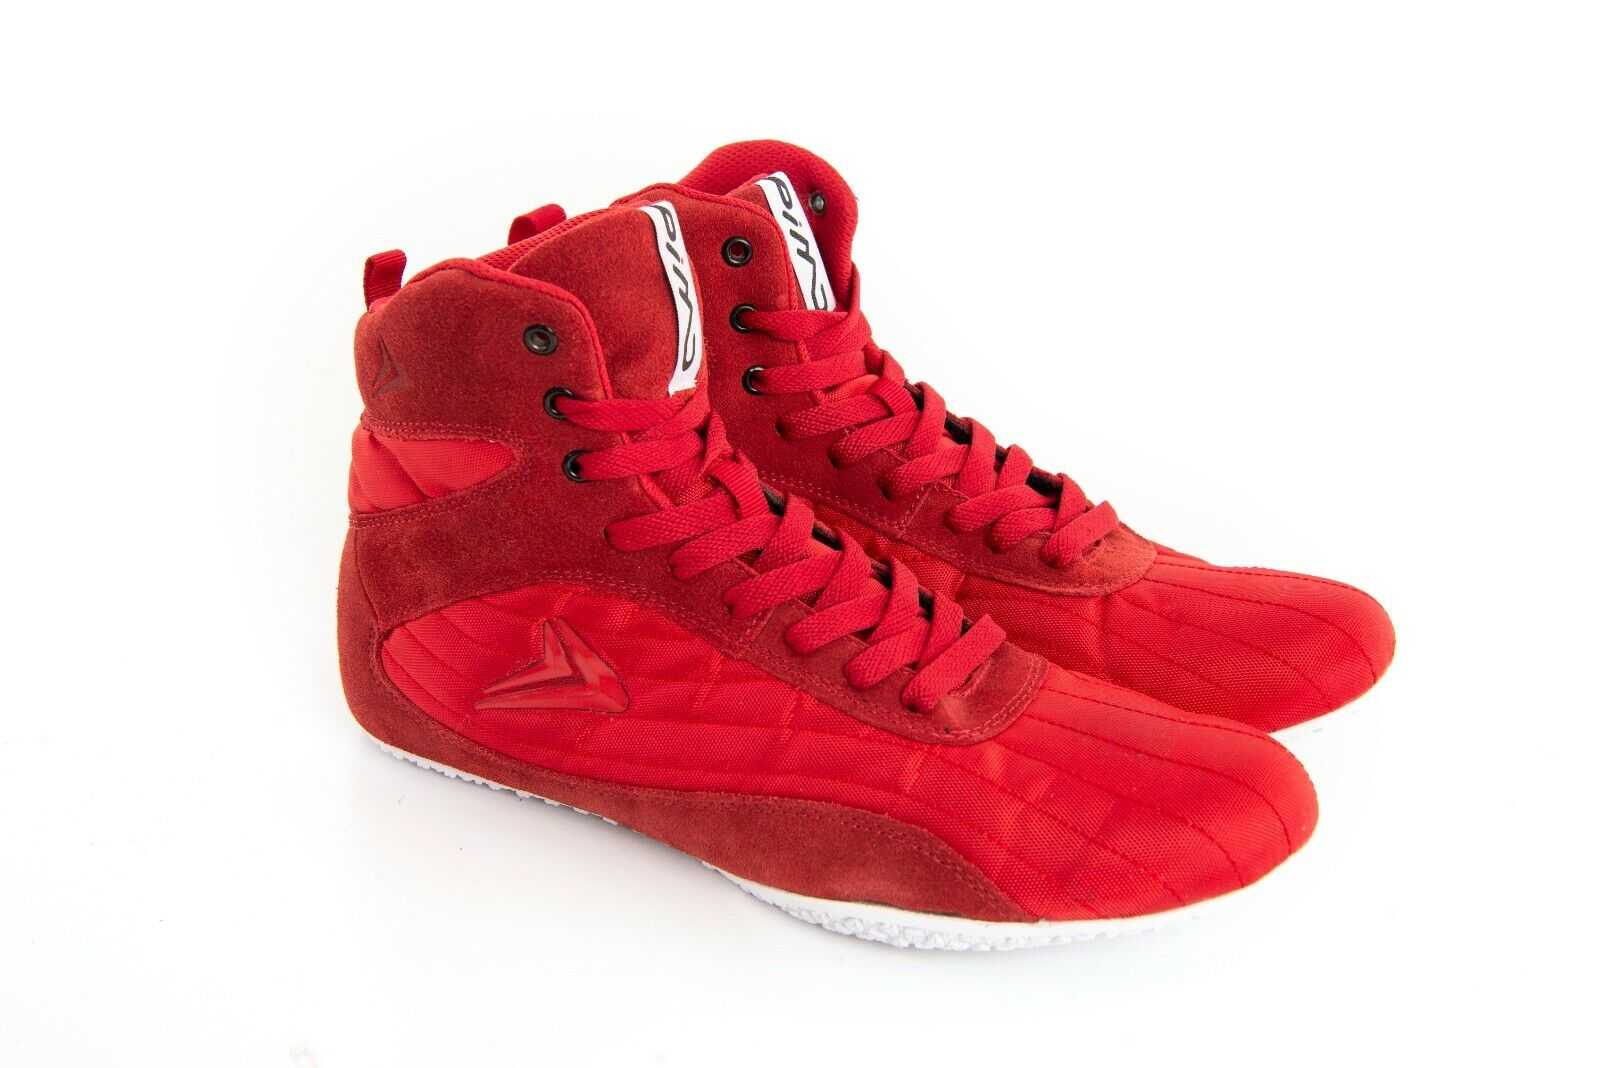 PIMD rot X-Core V2 Gym schuhe Training Hi Top Stiefel Bodybuilding MMA Boxing NEW